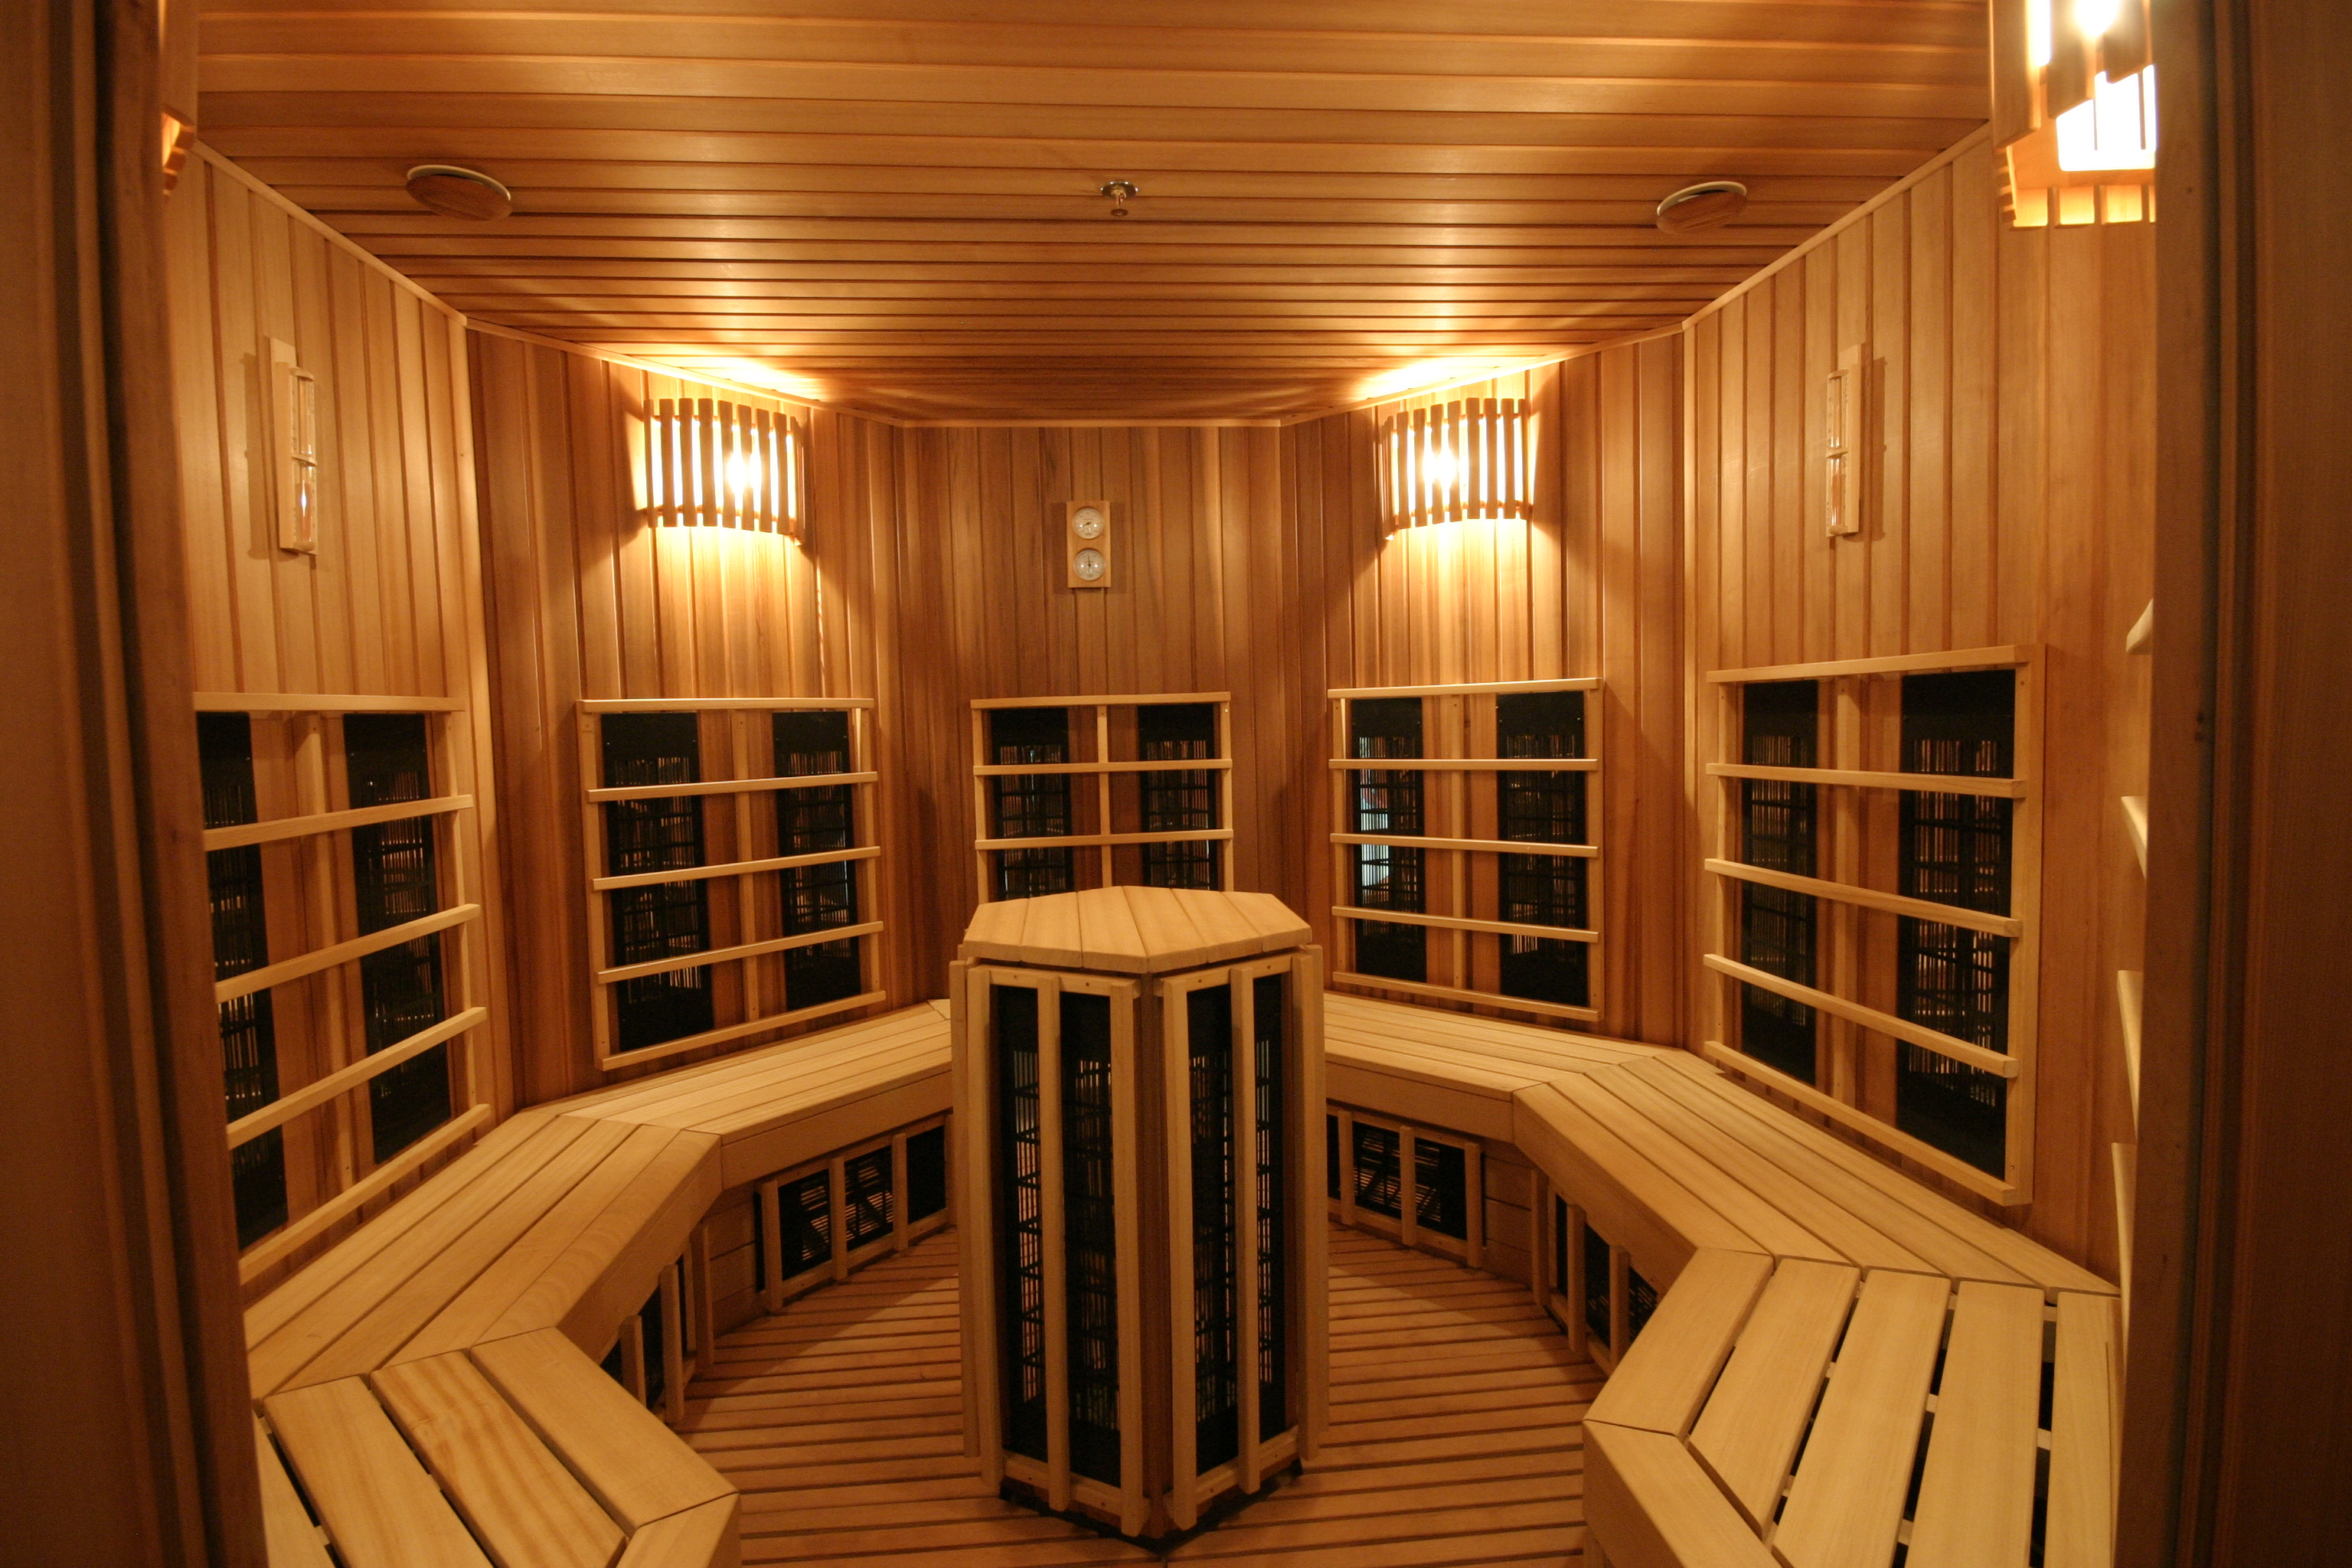 infrared sauna benefits 6 reasons why i 39 ve started using. Black Bedroom Furniture Sets. Home Design Ideas